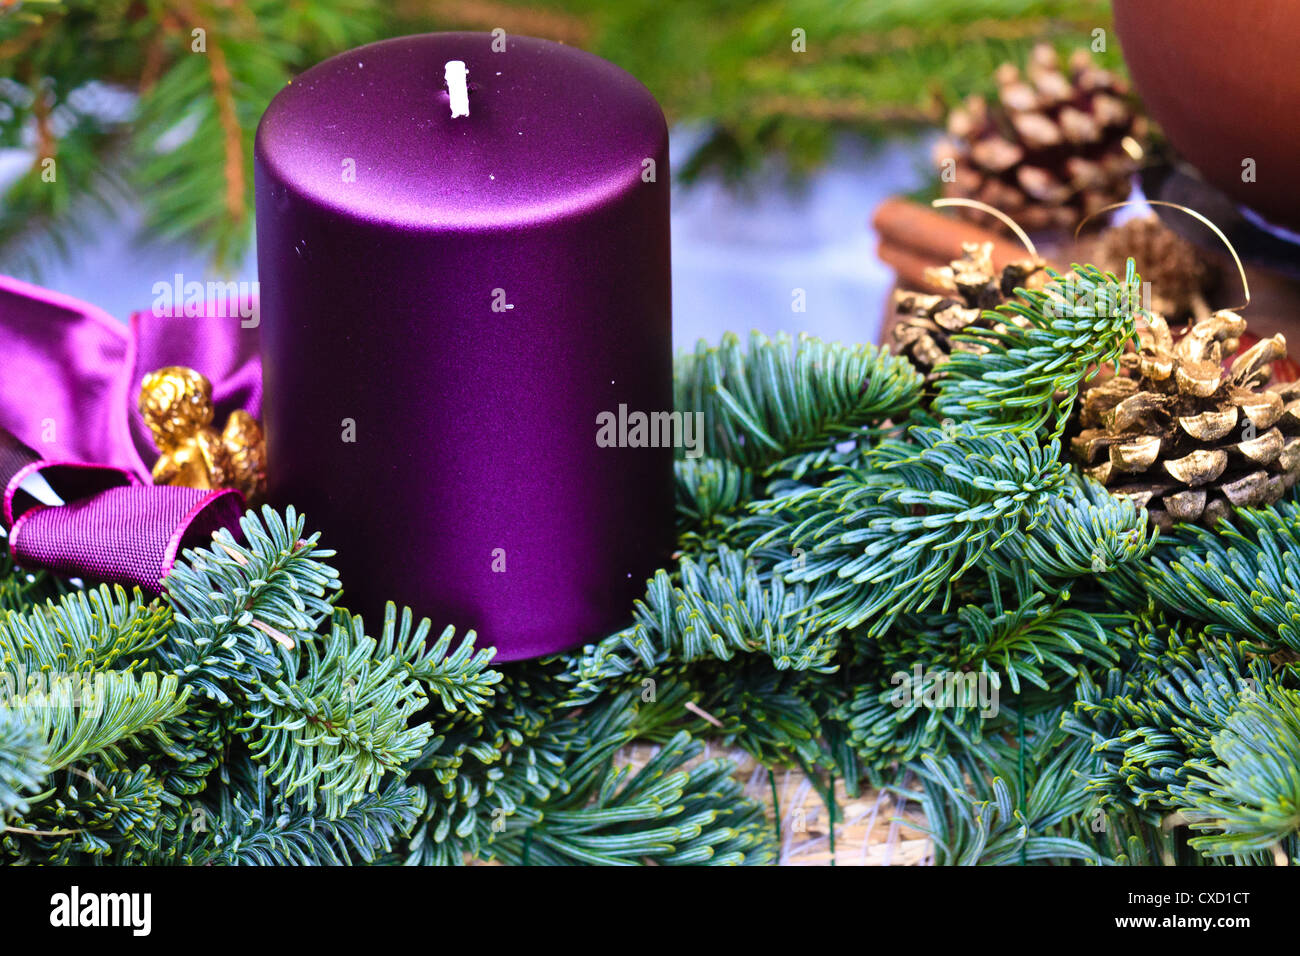 Candle of Christmas Advent Wreath (detail view) - Stock Image